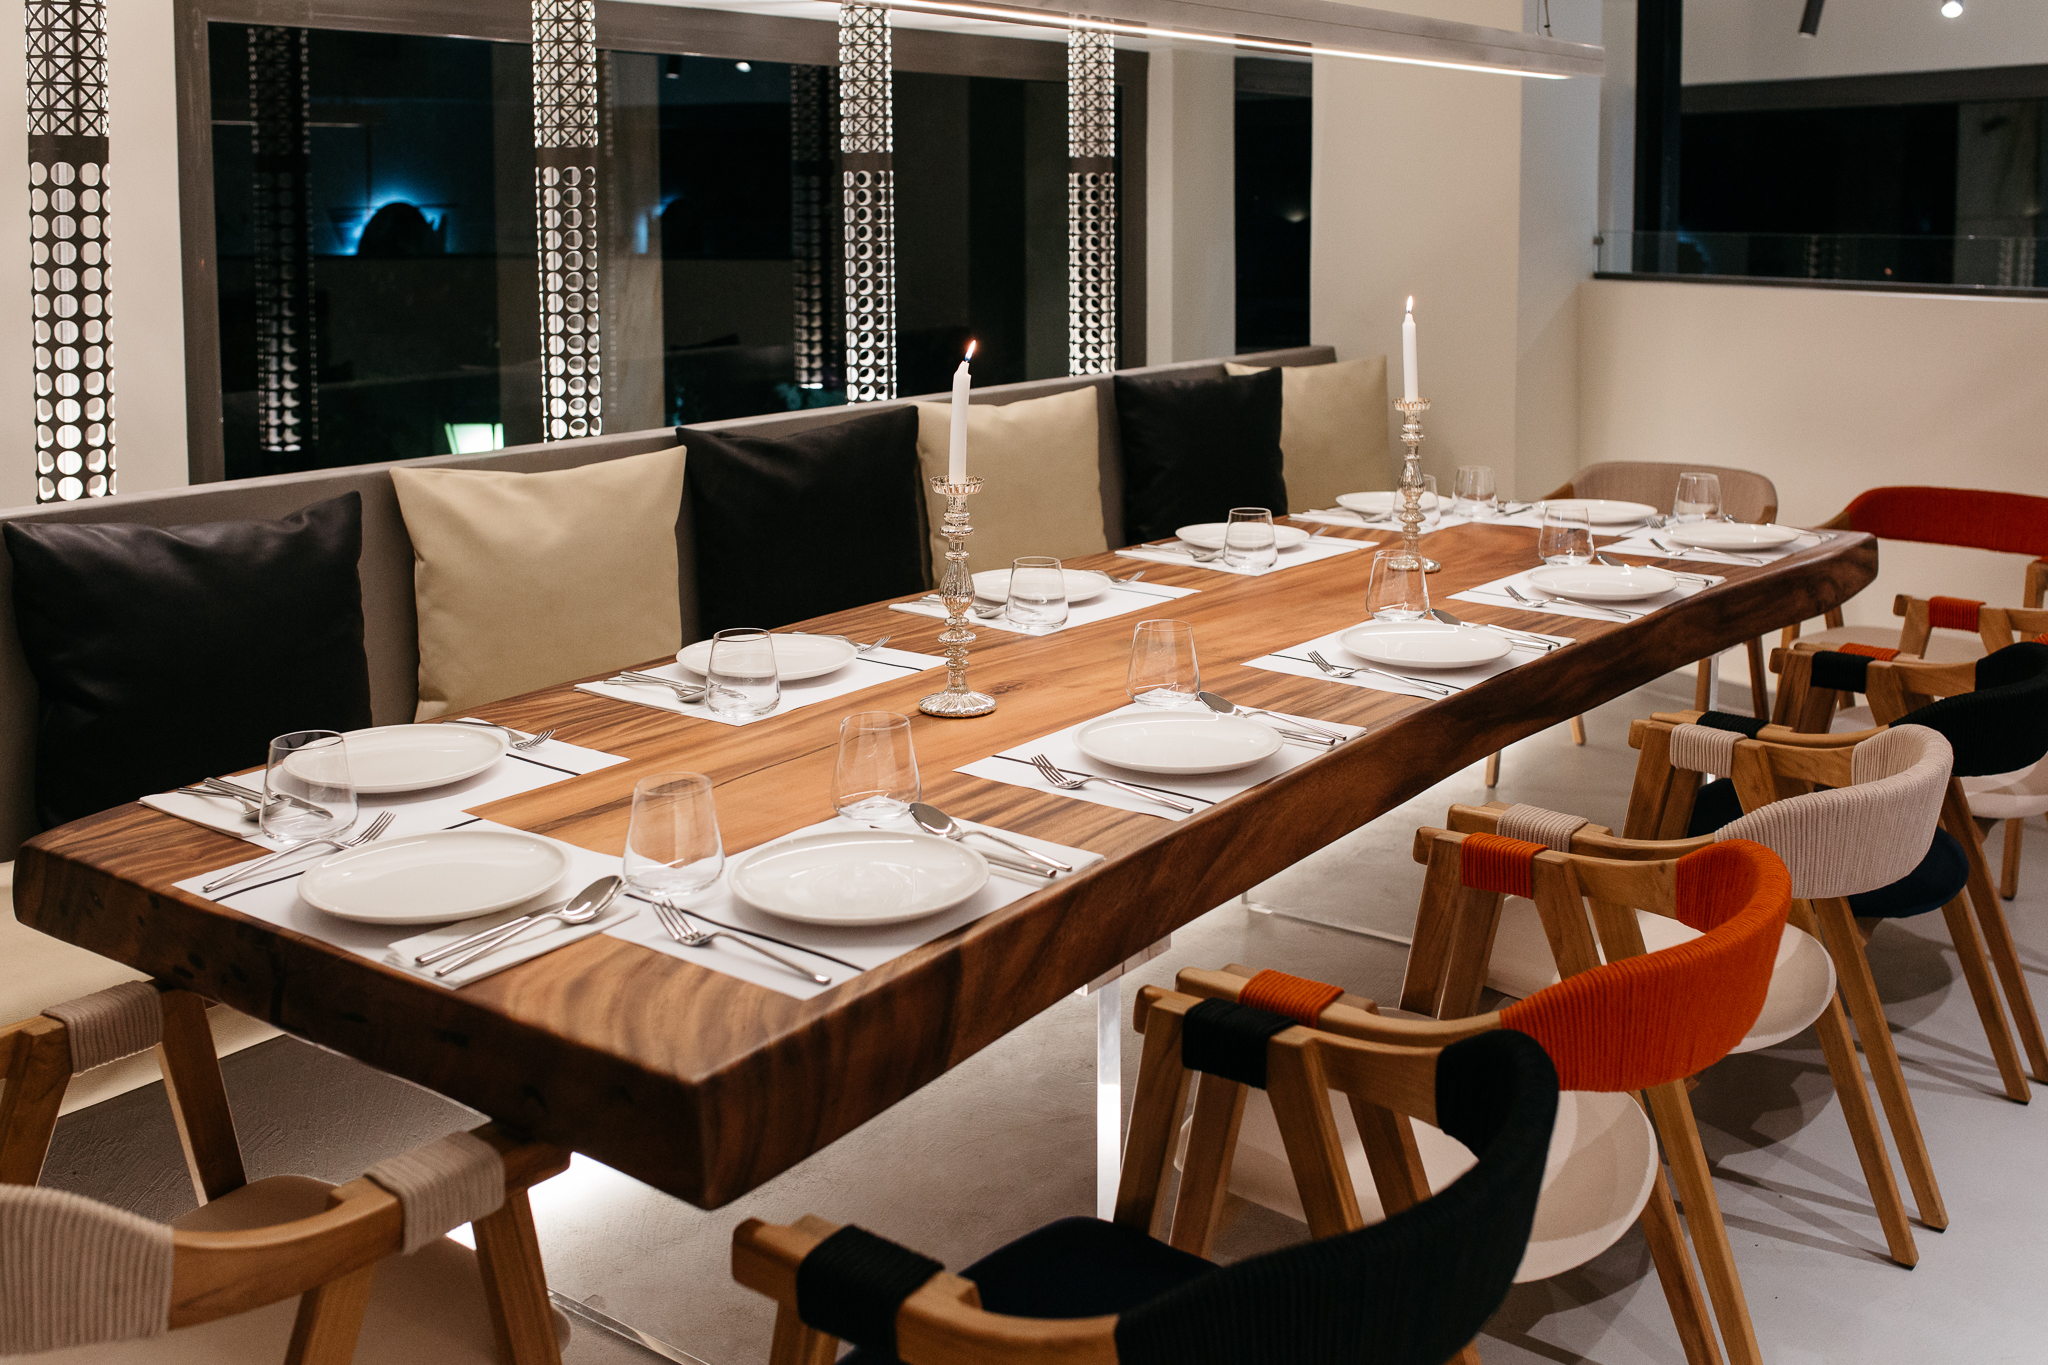 "333ChefsWorkshop ""333 & Chef's Workshop"": a new restaurant opening in the capital"